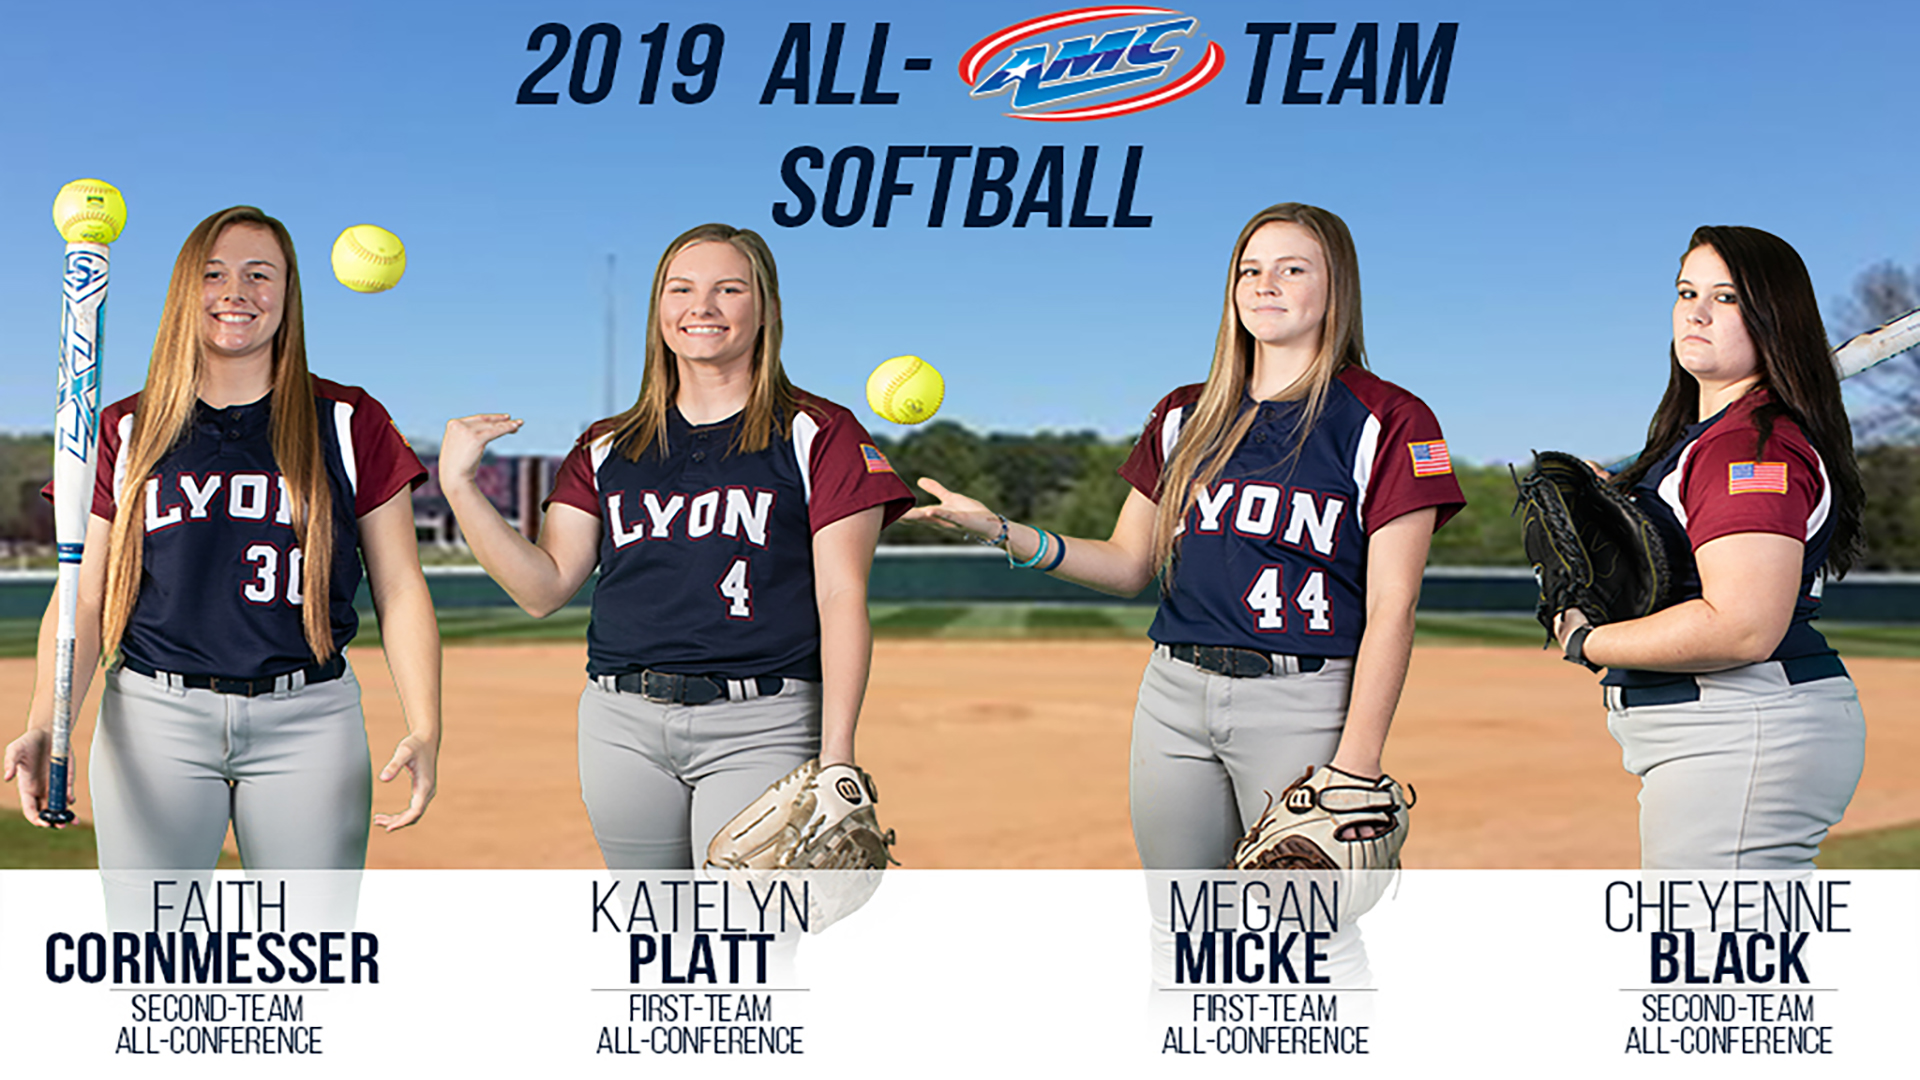 Scots Garner Four All-Conference Honorees - Lyon College